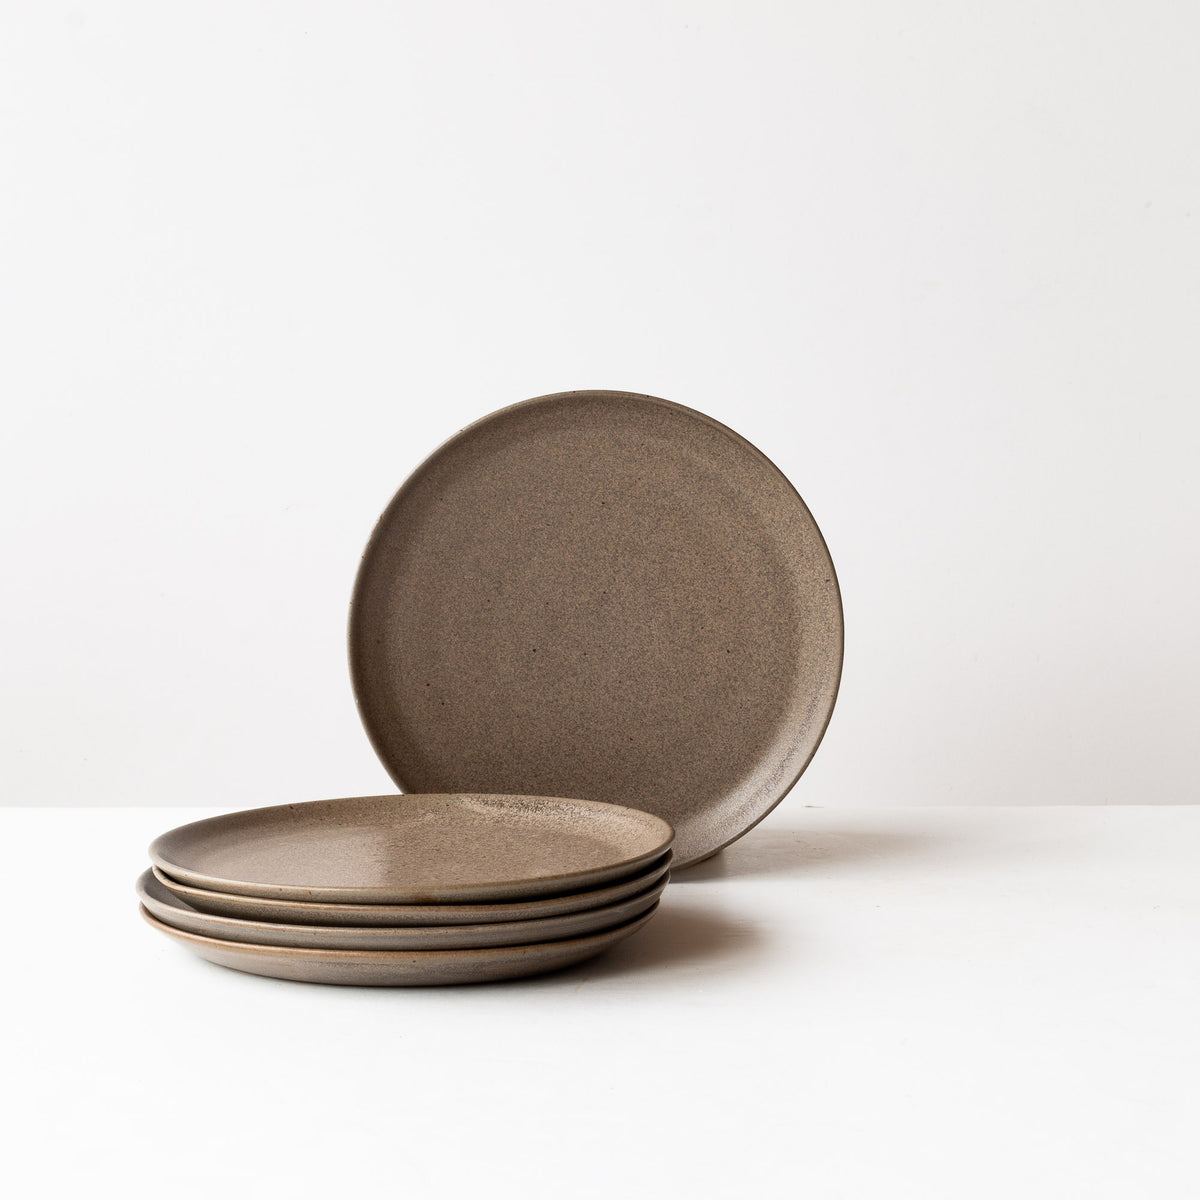 Taupe - Handmade Grey Stoneware Small Plates - Sold by Chic & Basta